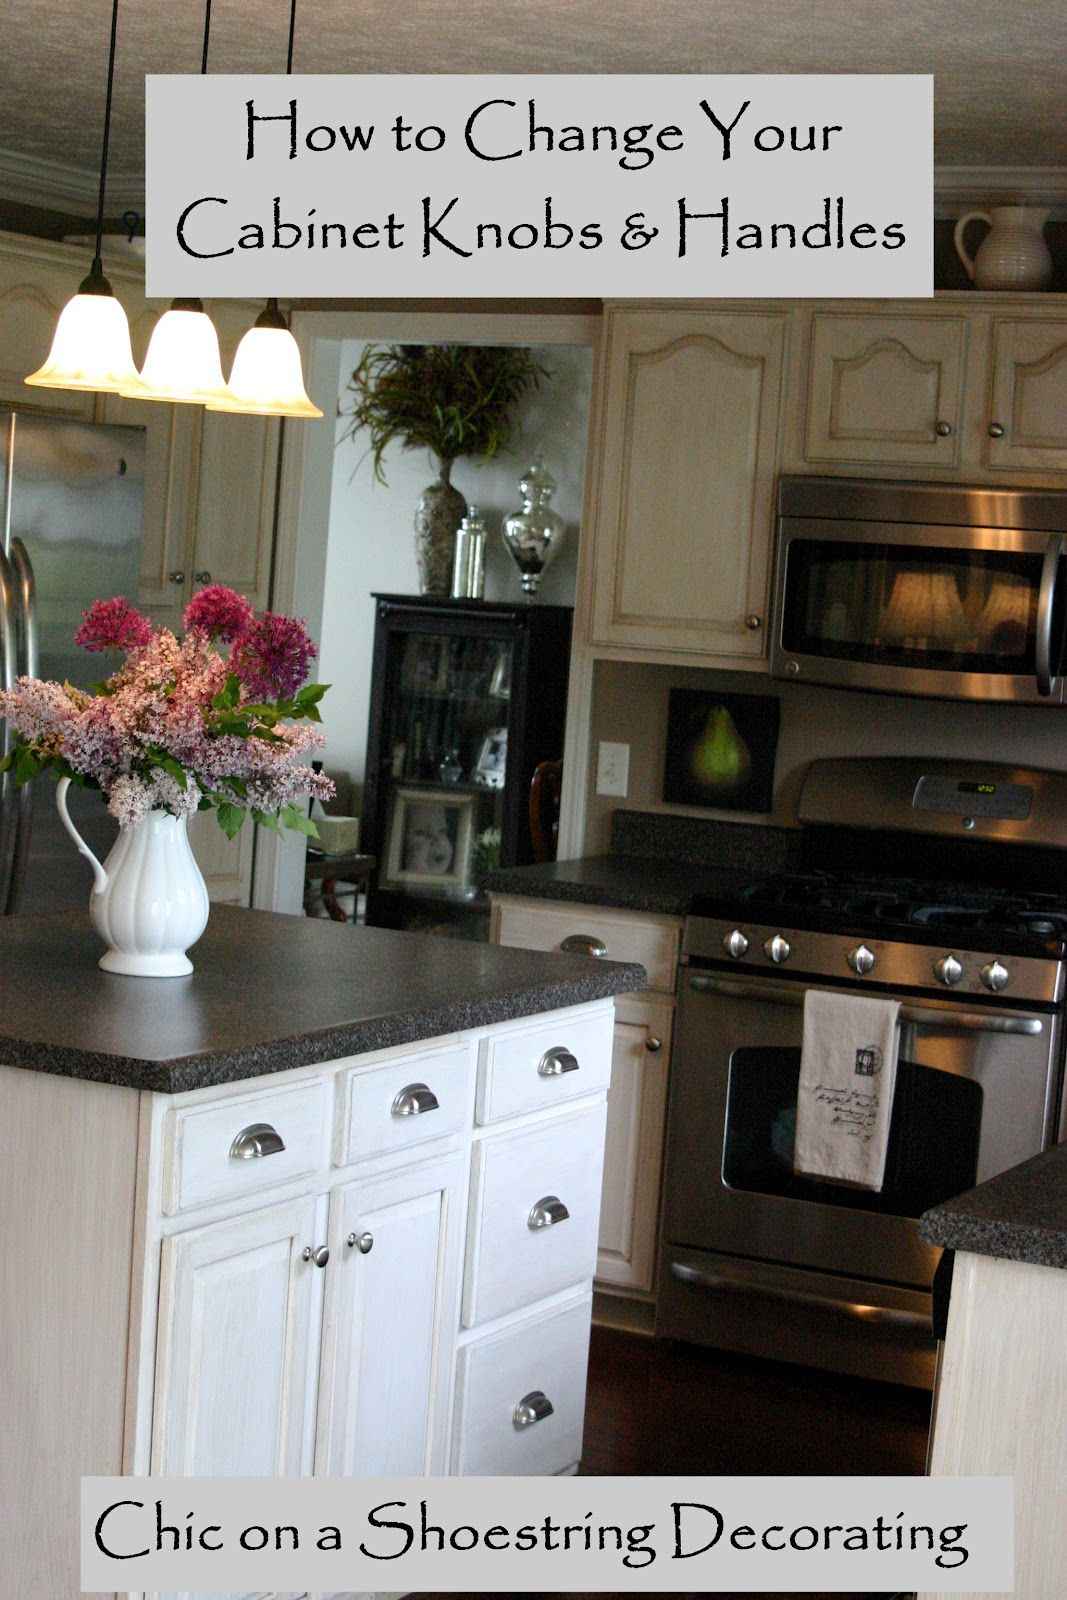 Kitchen cabinet pulls decorating how to change your kitchen